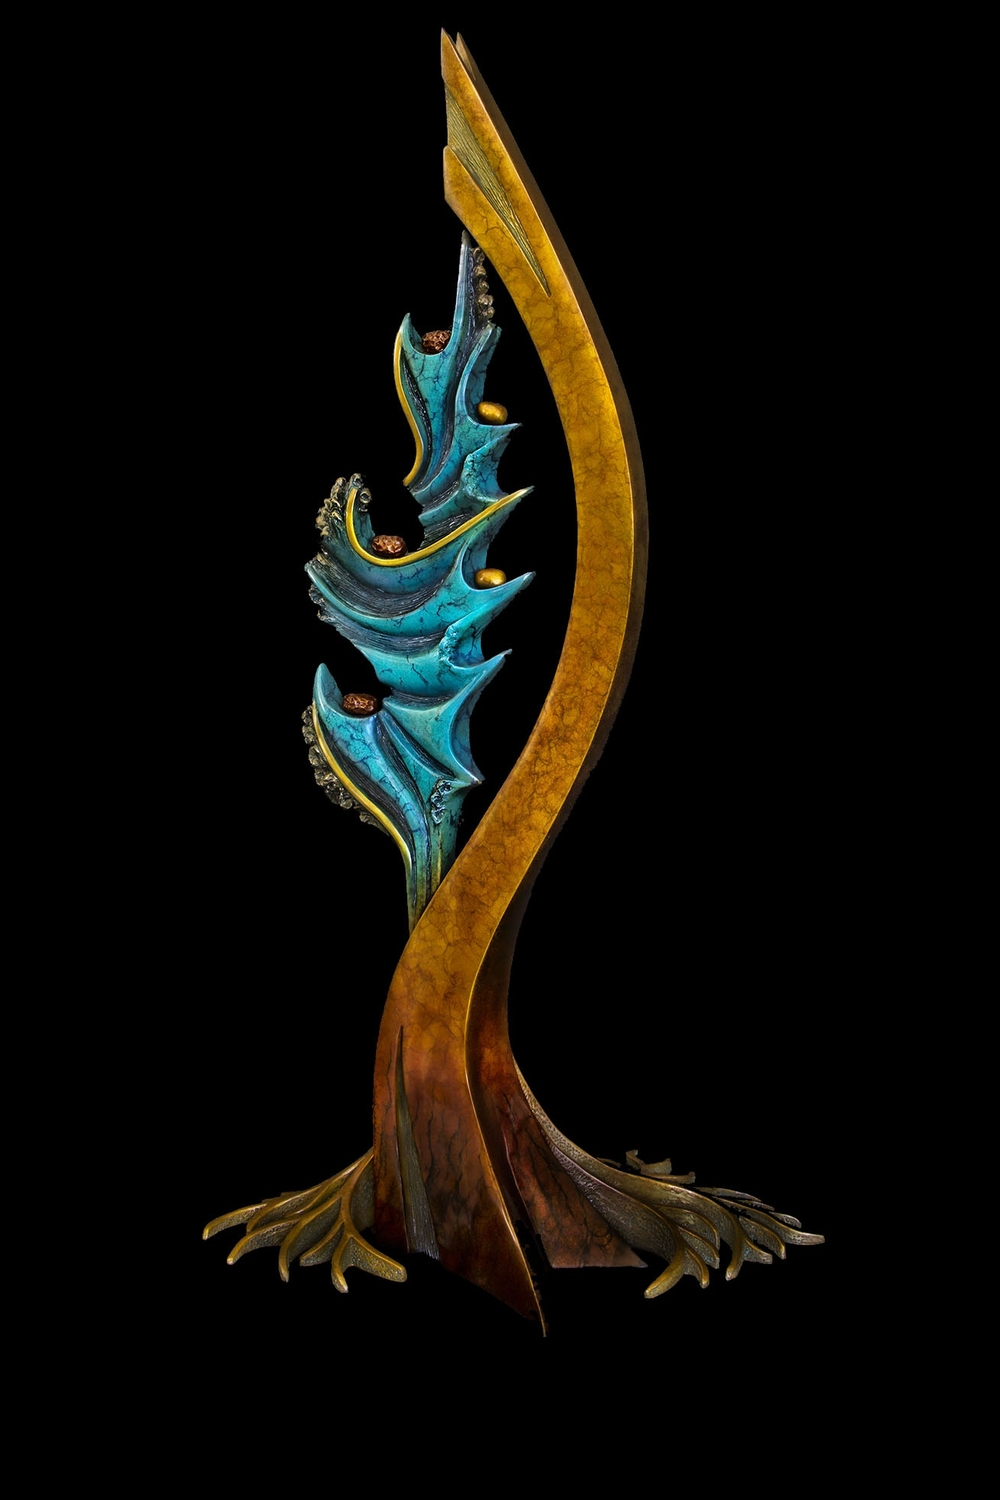 "Roots of Inspiration, Bronze, 37"" H x 19"" W x 15.25"" D, Edition of 35:  In order to thrive in this world and/or allow the creative process to blossom forth in all its glory, a stable, grounded, yet flexible element in our lives needs to take root. From these grounded roots, newness, joy, creativity, daring, and eventually the seeds of further growth and exploration spring forth like an arrow from a bow.  The Tree of Life here also serves as a symbol for the earth with the ever-changing, ever-creating ocean feeding off of it."